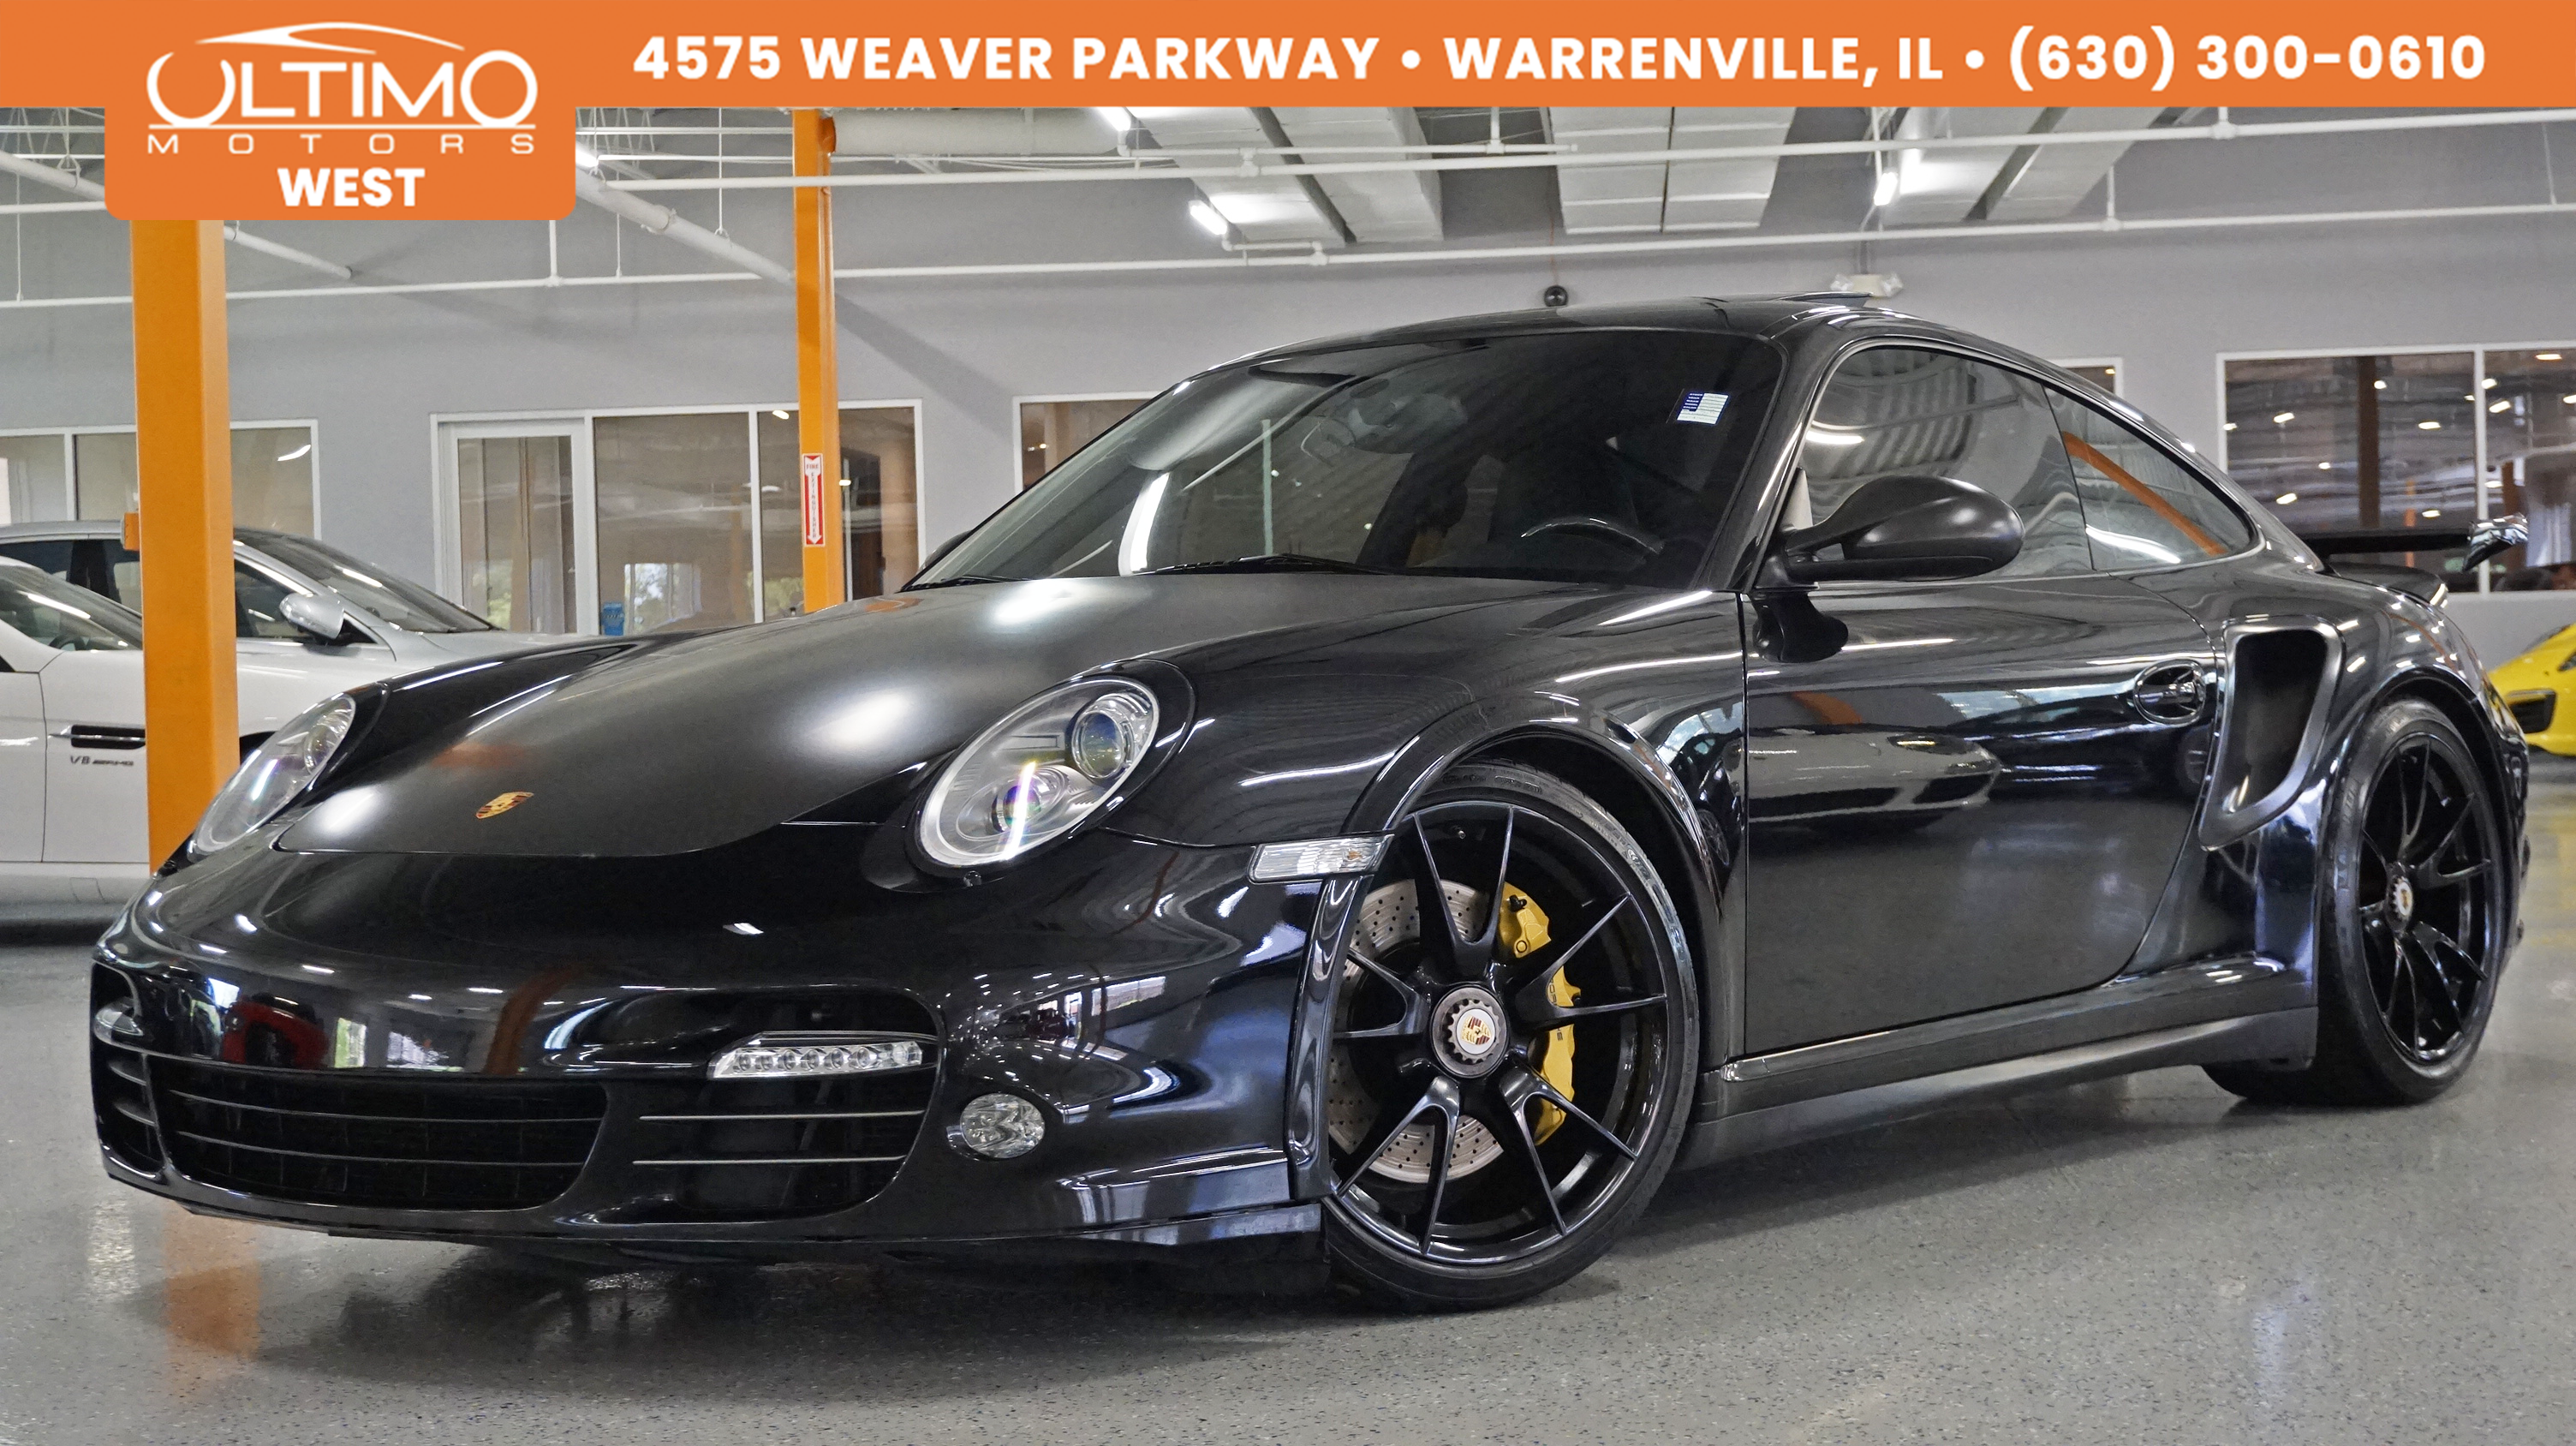 Pre-Owned 2012 Porsche 911 Turbo, 6-speed Manual, Limited Slip Rear Diff lock, Msrp $149,615